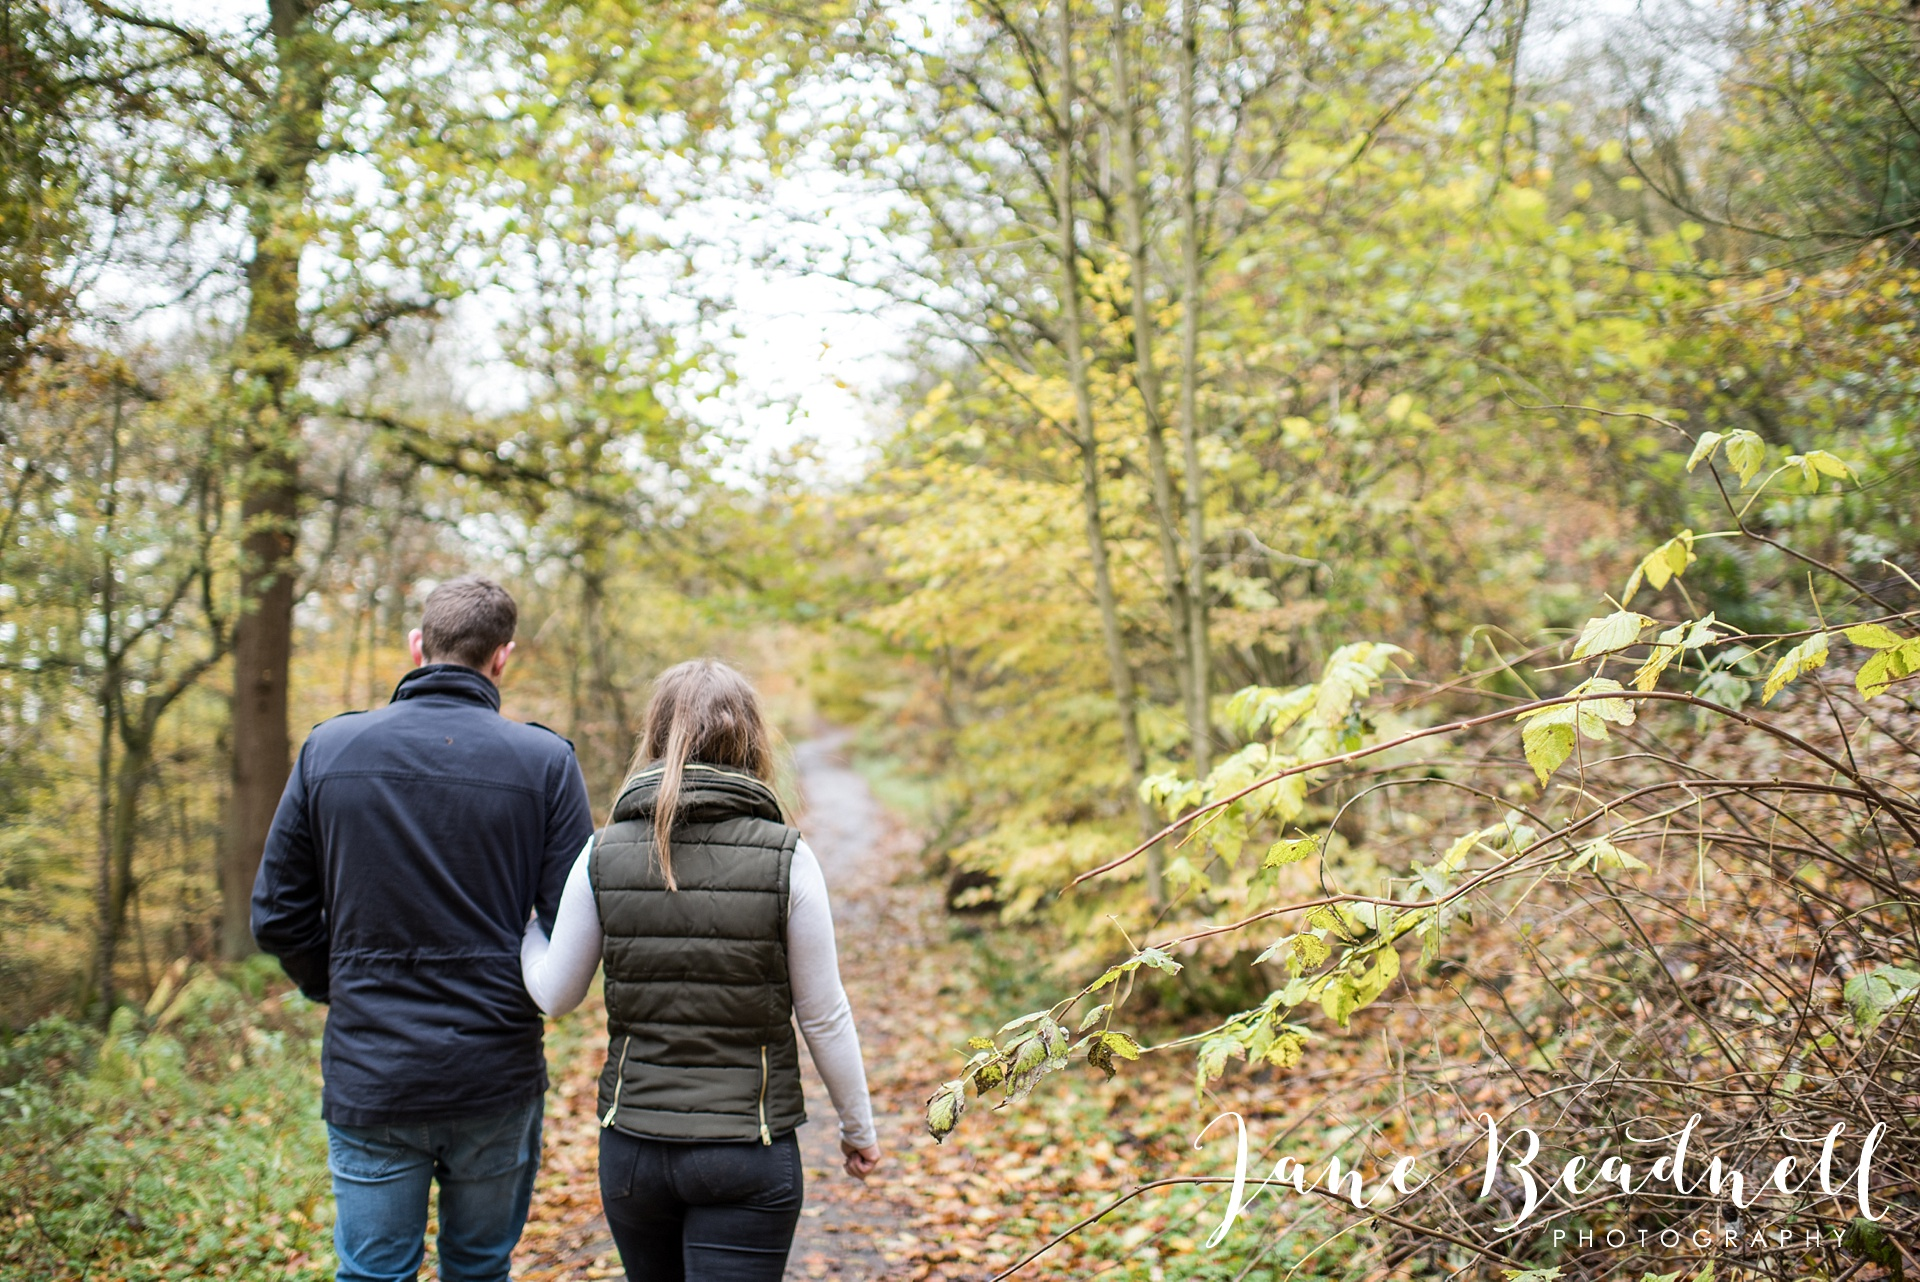 engagement-shoot-yorkshire-wedding-photographer-jane-beadnell-photography-uk-and-destination-wedding-photographer-engagement-shoot_0045